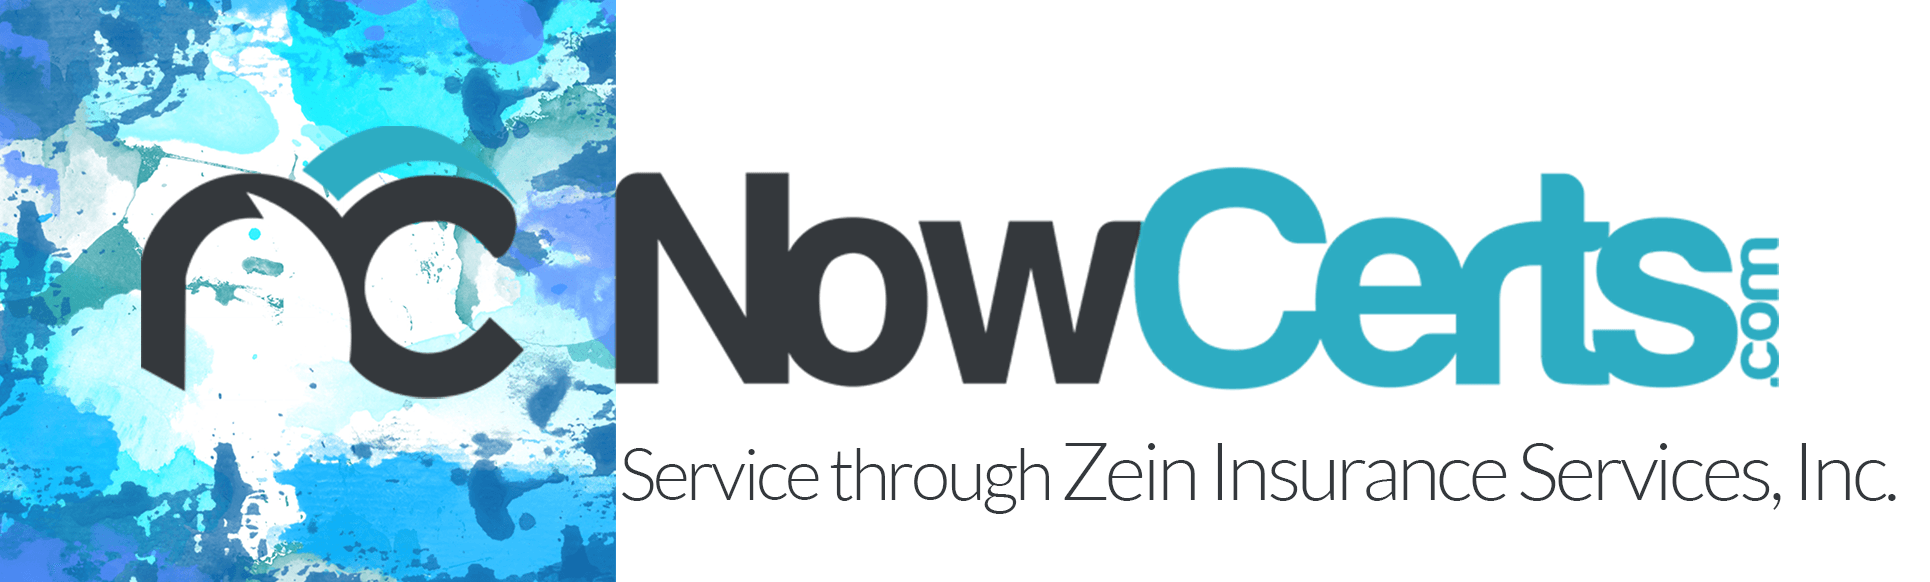 NowCerts, Zein Insurance Services, Insurance, Independent Agents,